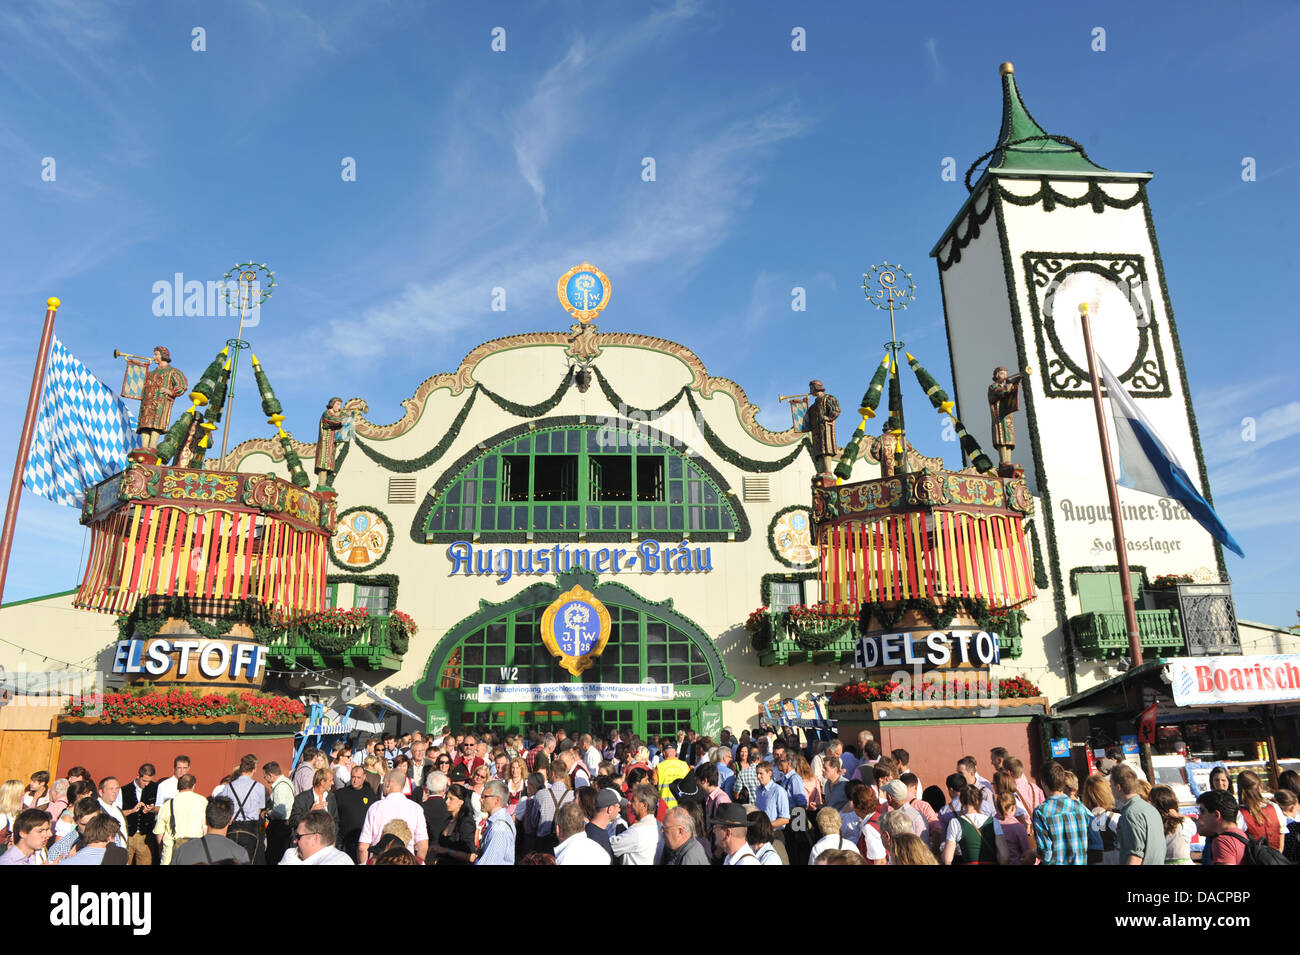 The Augustiner-Festhalle tent on the Oktoberfest grounds is pictured in Munich, Germany, 29 September 2011. The Stock Photo